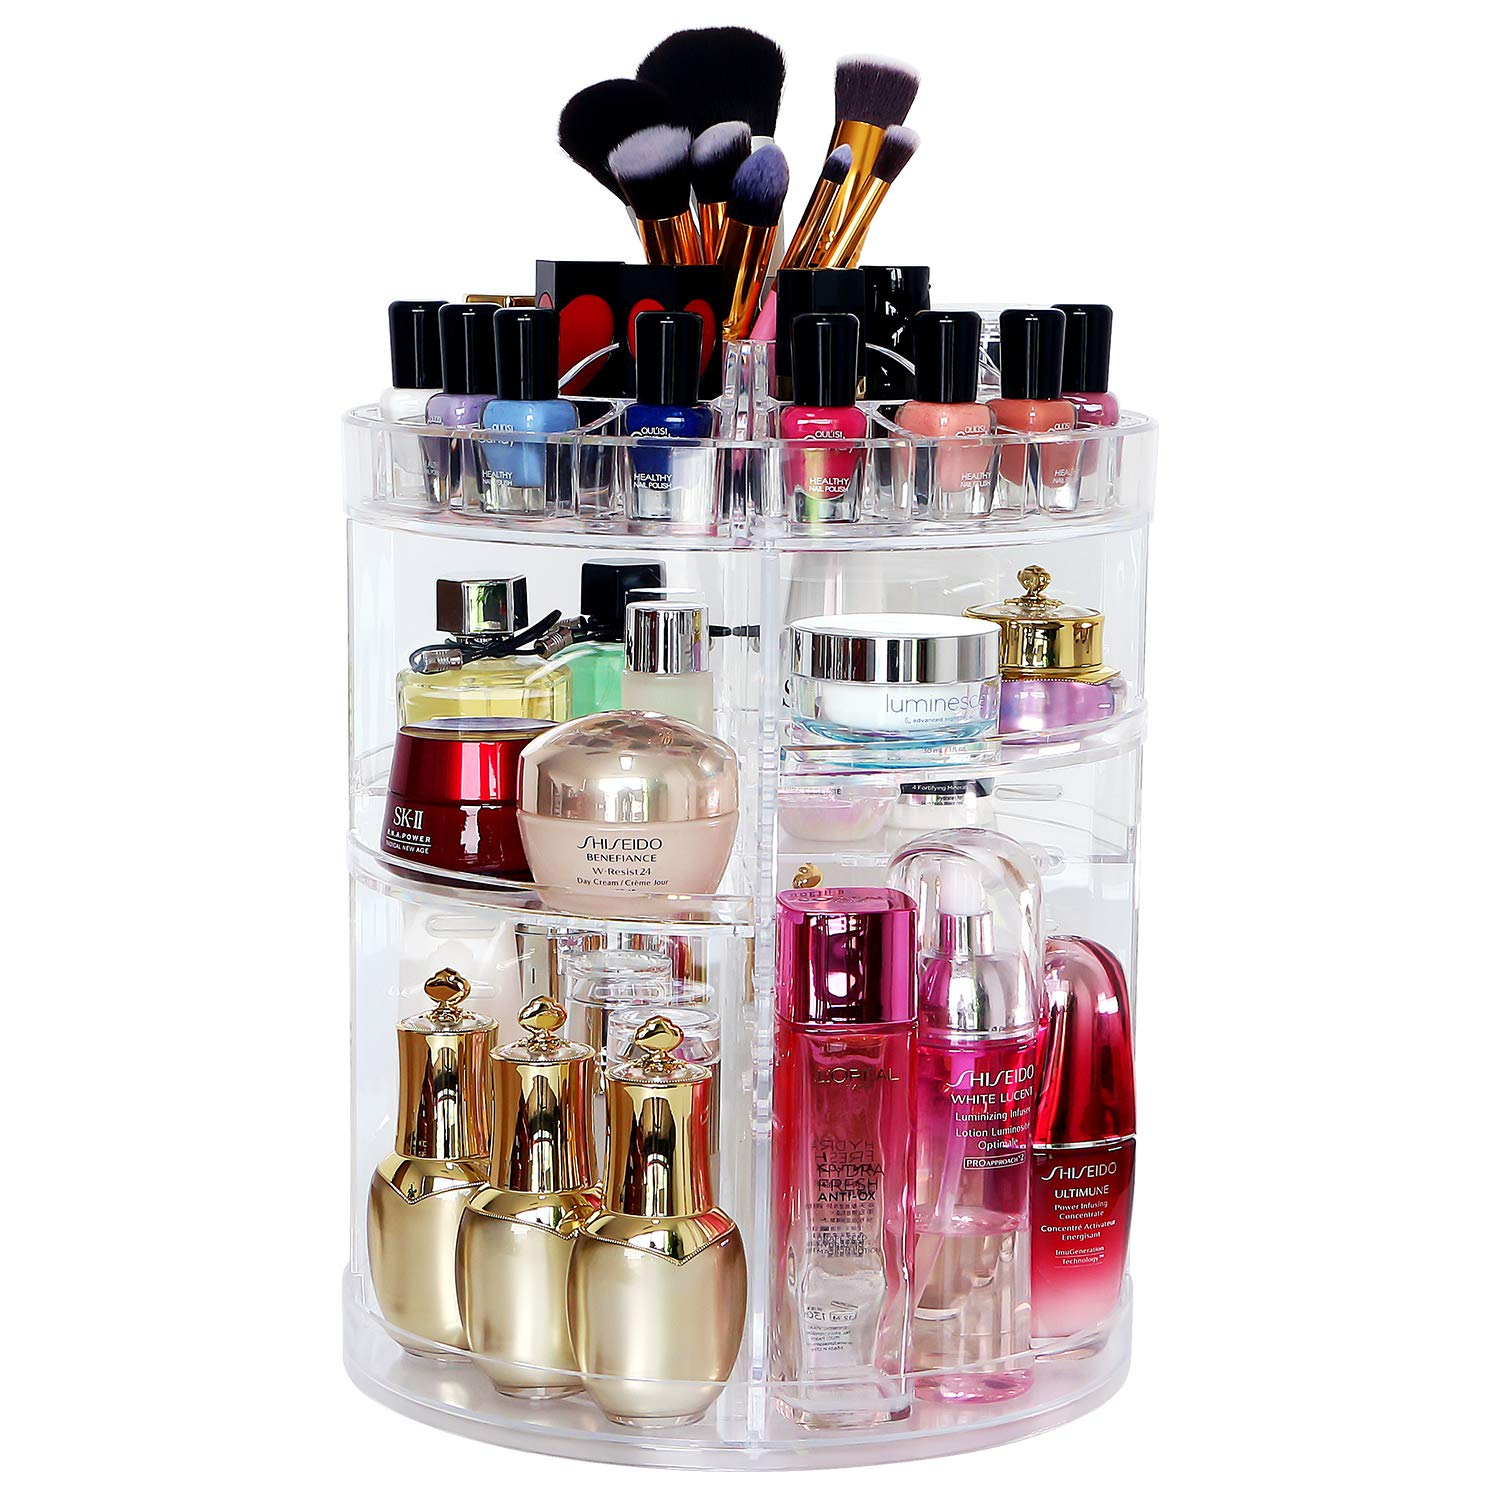 807053af4009 COOLBEAR Makeup Organizer,360 Degree Rotating Adjustable Acrylic Cosmetic  Storage Display Case with 6 Layers Large Capacity, Fits Creams, Makeup ...